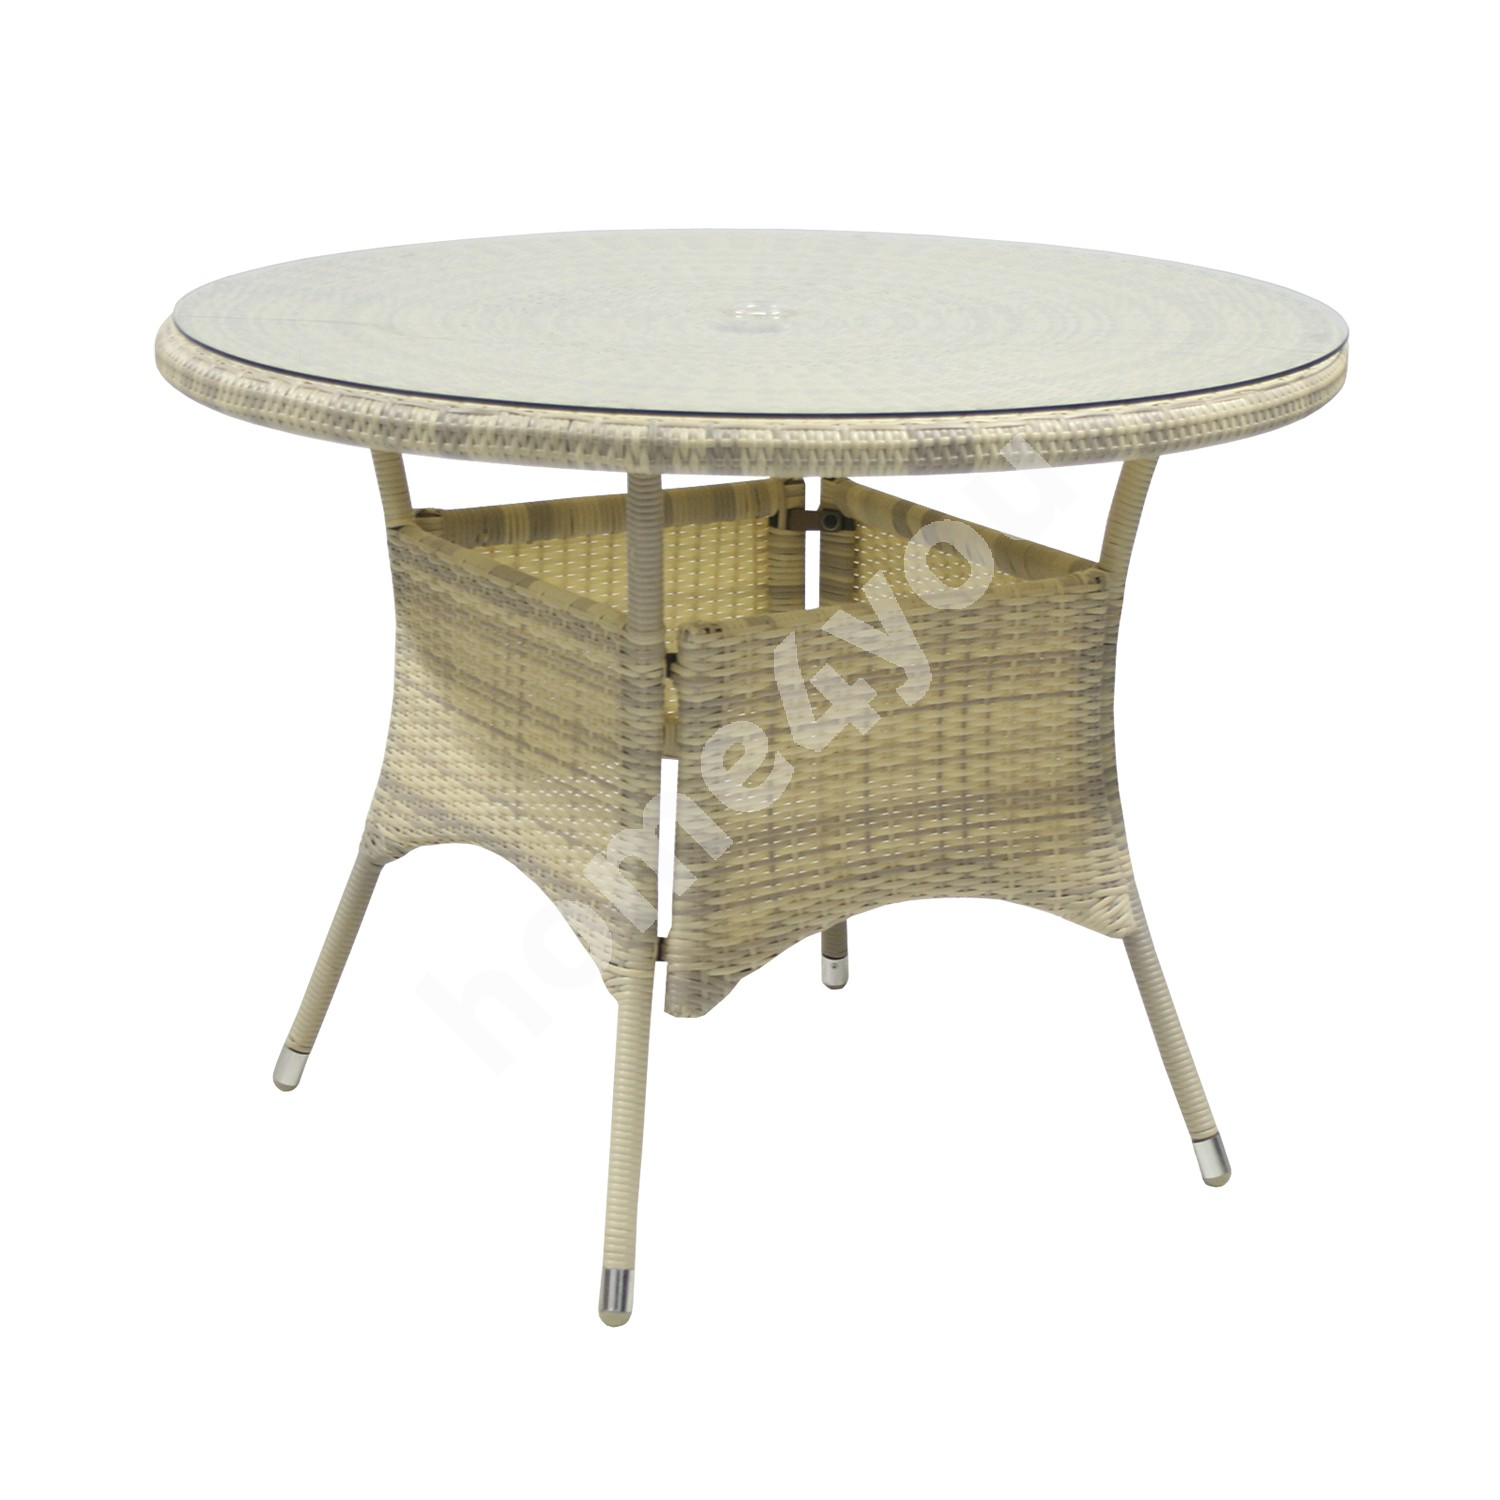 Table WICKER D100xH71cm, table top: clear glass, aluminum frame with plastic wicker, color: beige